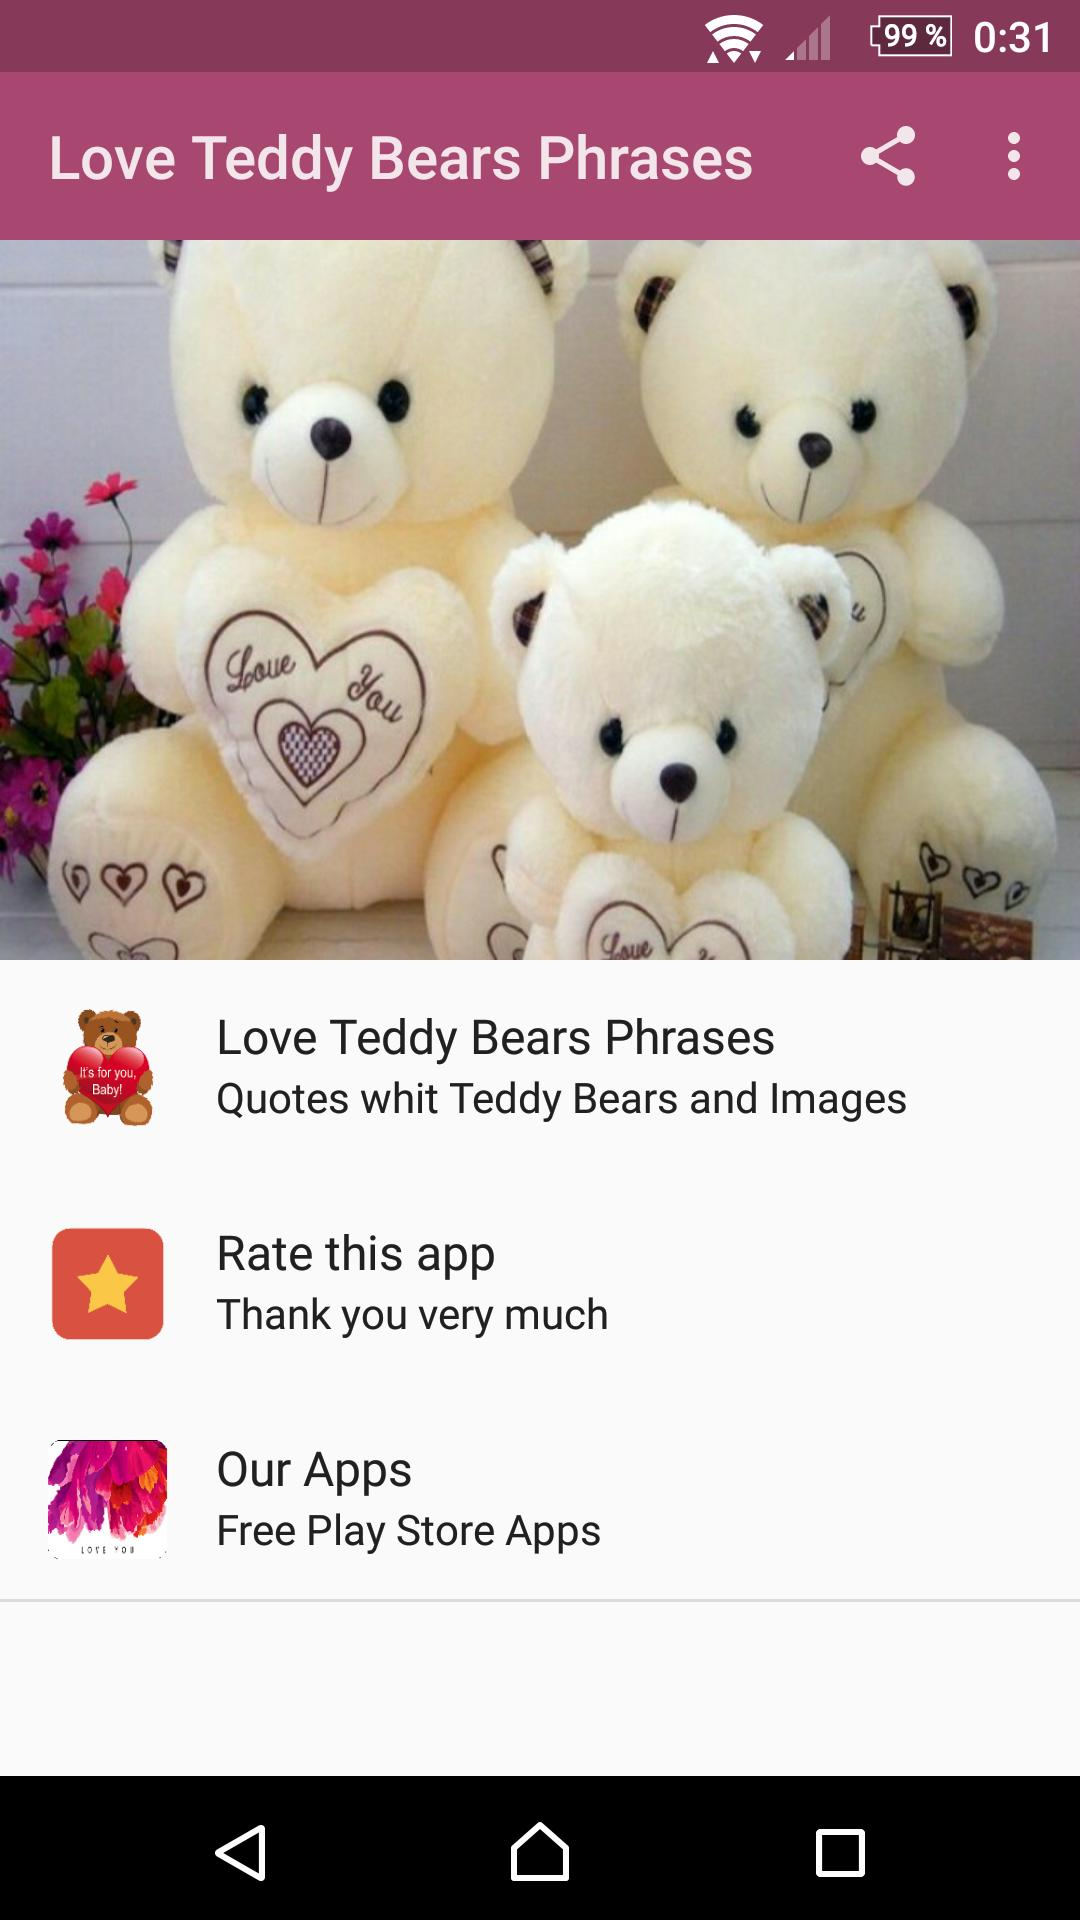 Love Teddy Bears Phrases for Android - APK Download